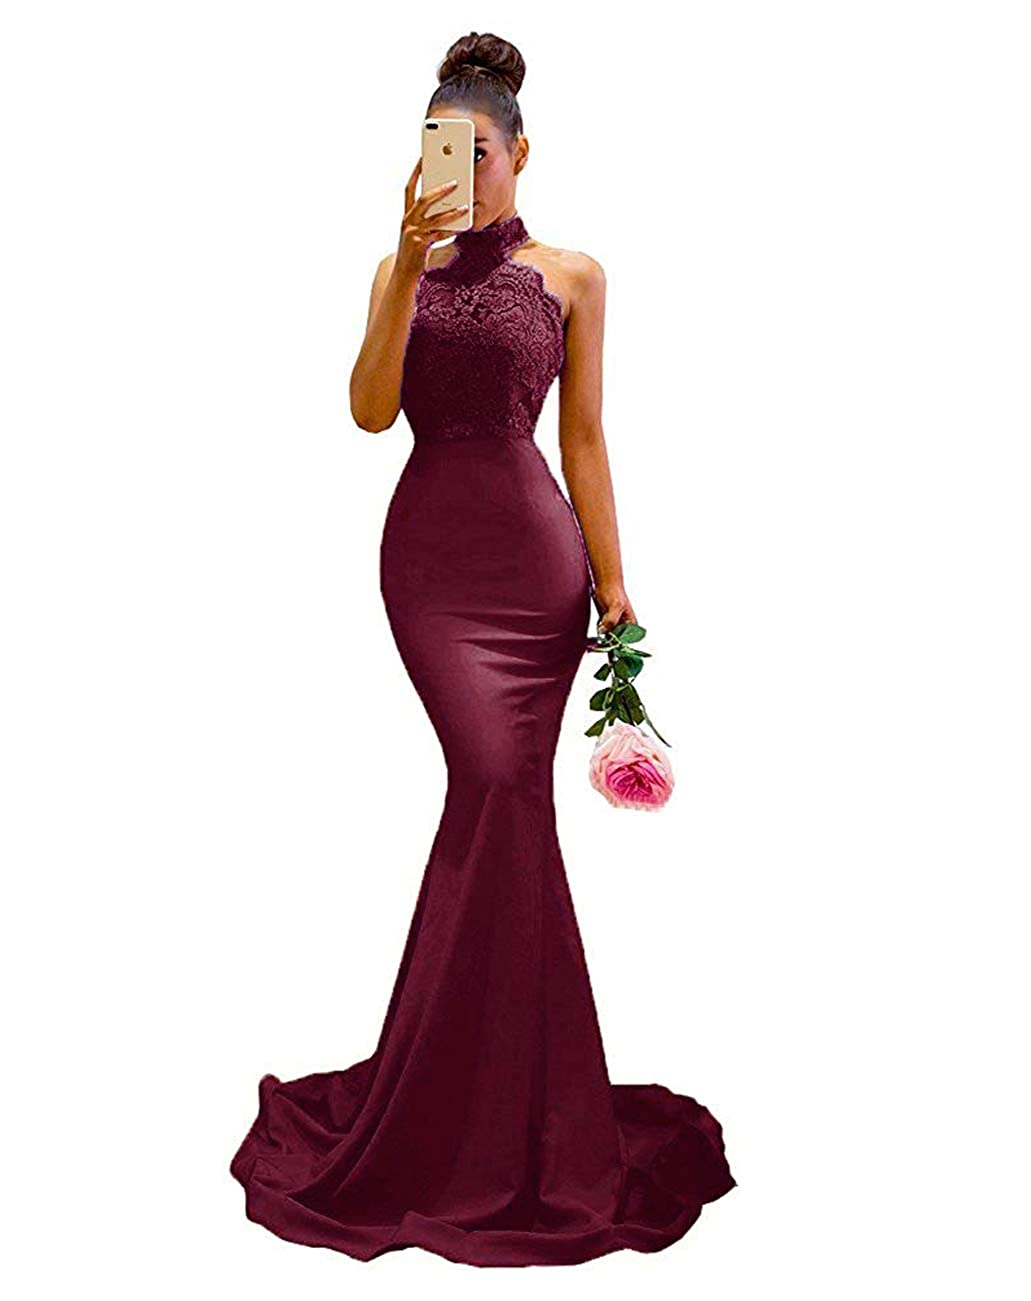 Burgundy BridalAffair Women's Halter Neck Mermaid Appliques Lace Long Bridesmaid Dress Formal Party Gown for Wedding